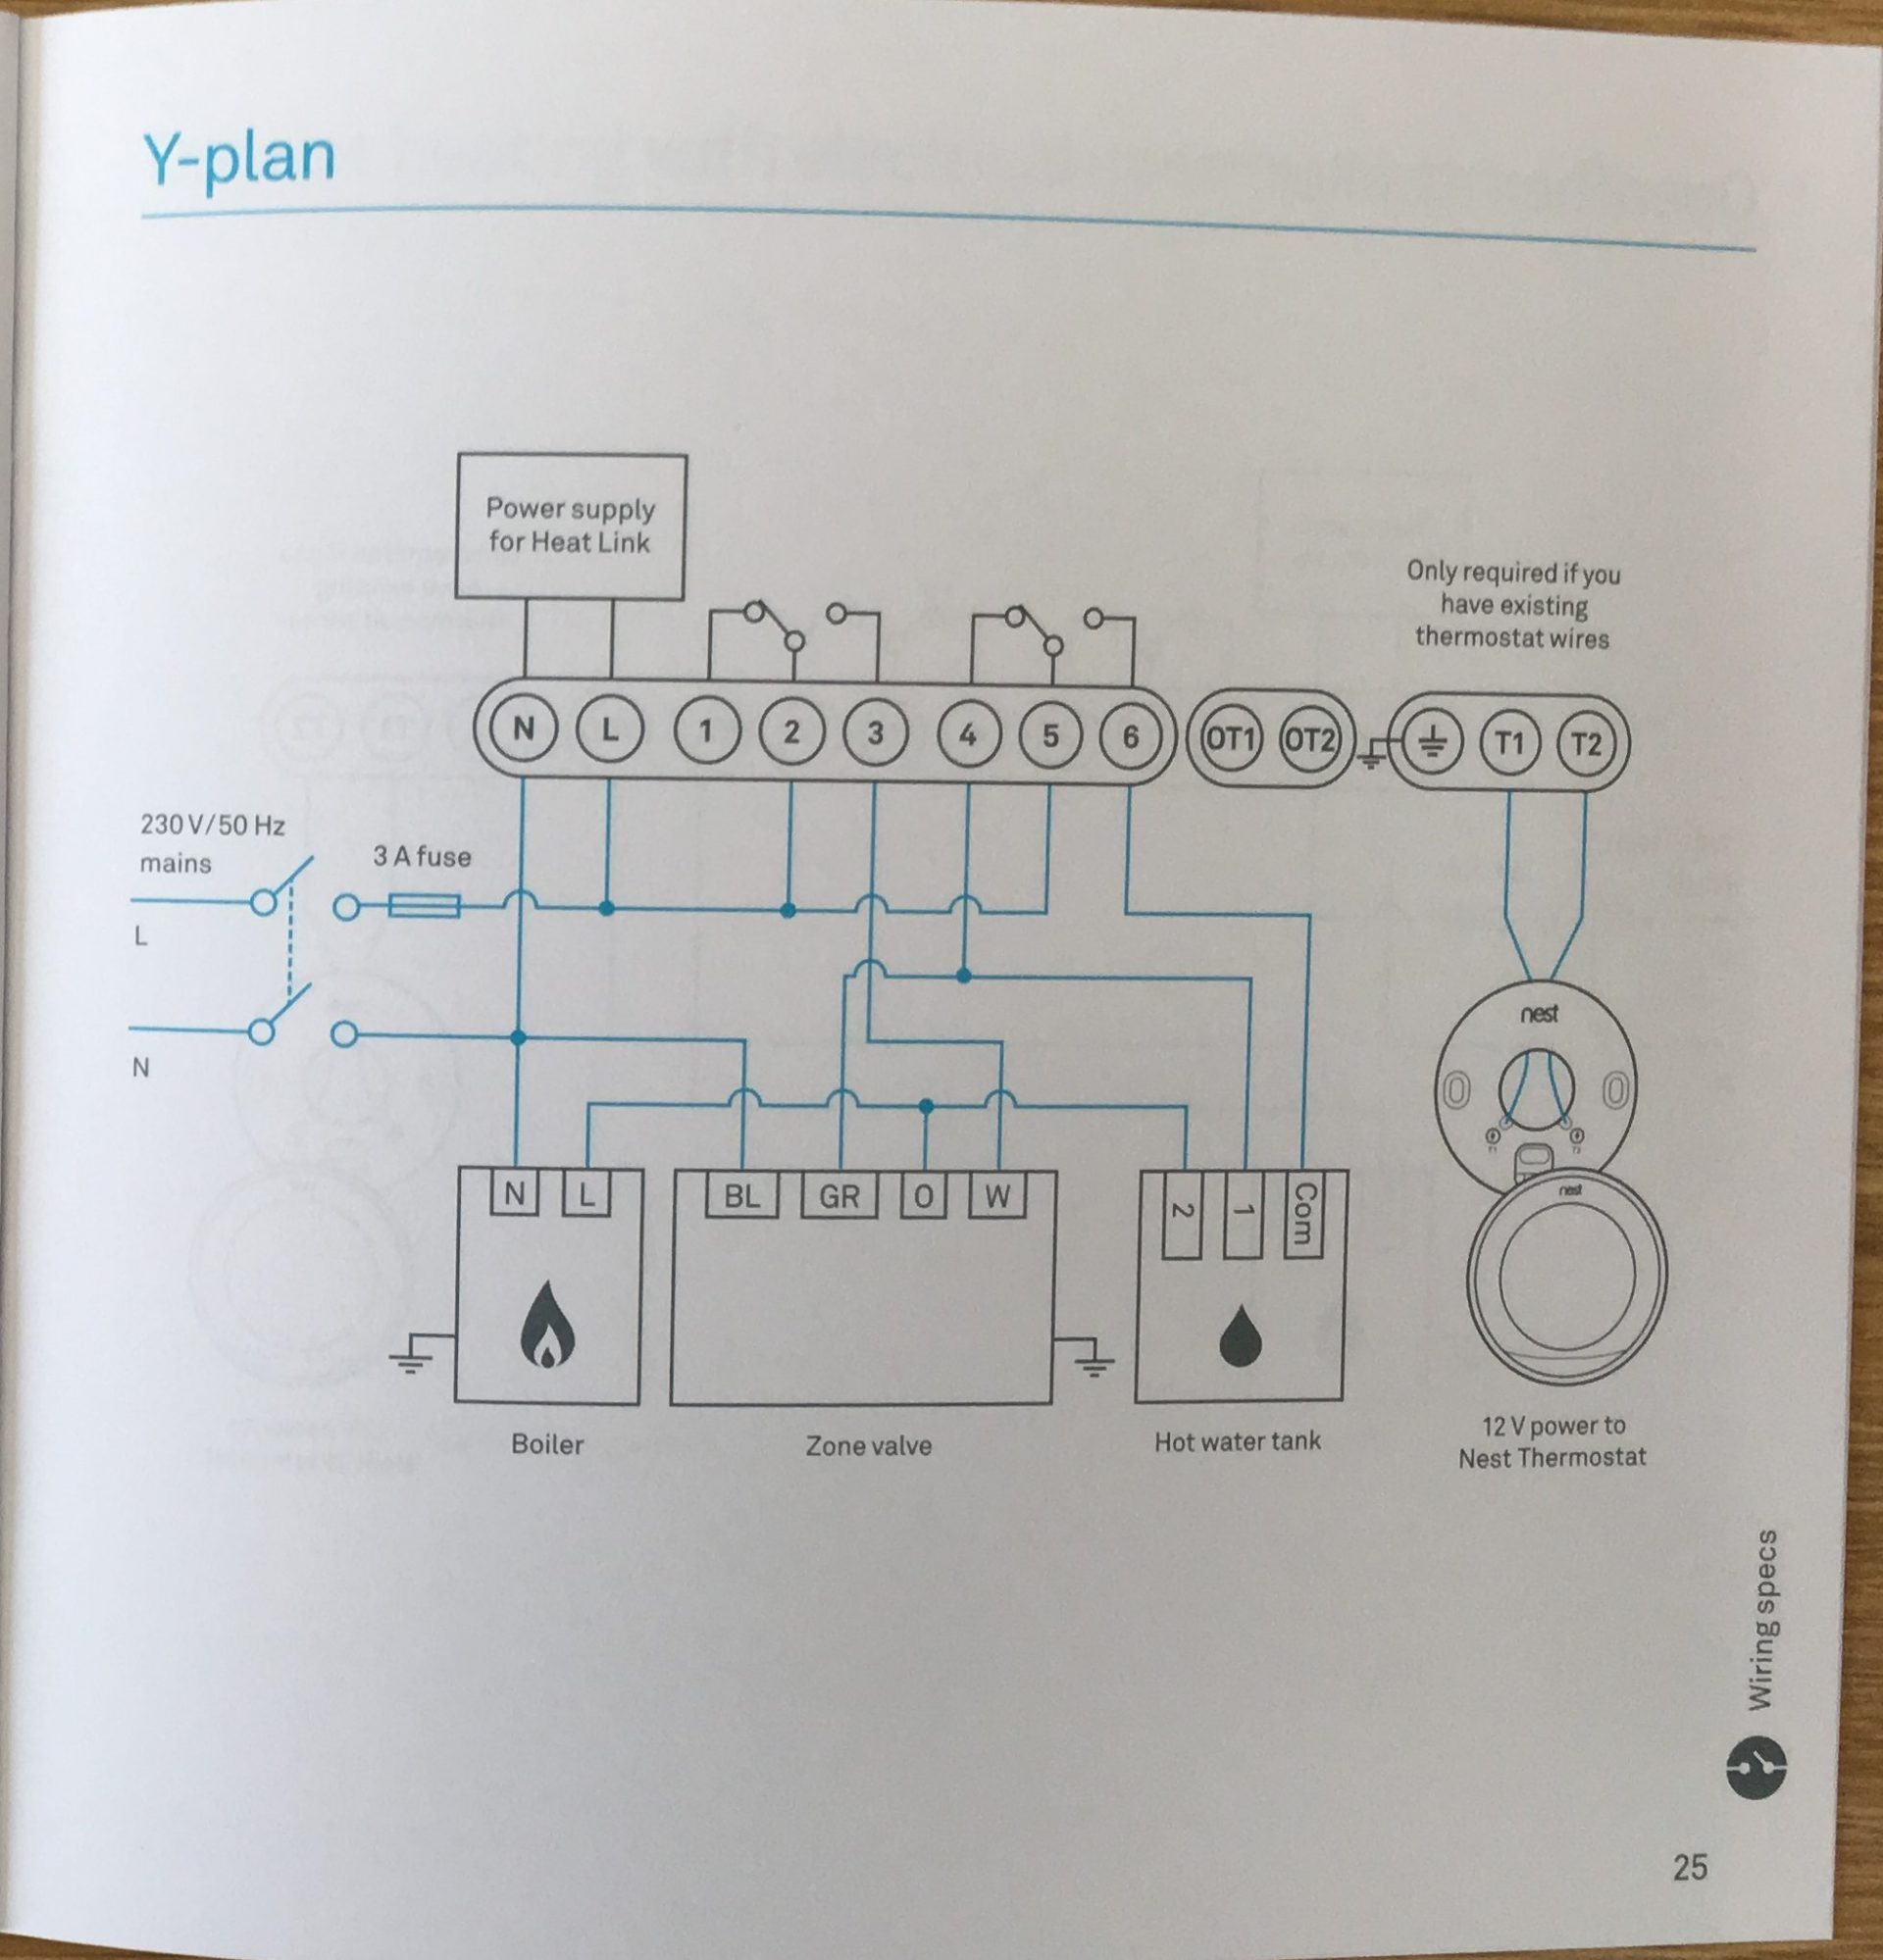 How To Install The Nest Learning Thermostat (3Rd Gen) In A Y-Plan - Y Plan Wiring Diagram For Nest